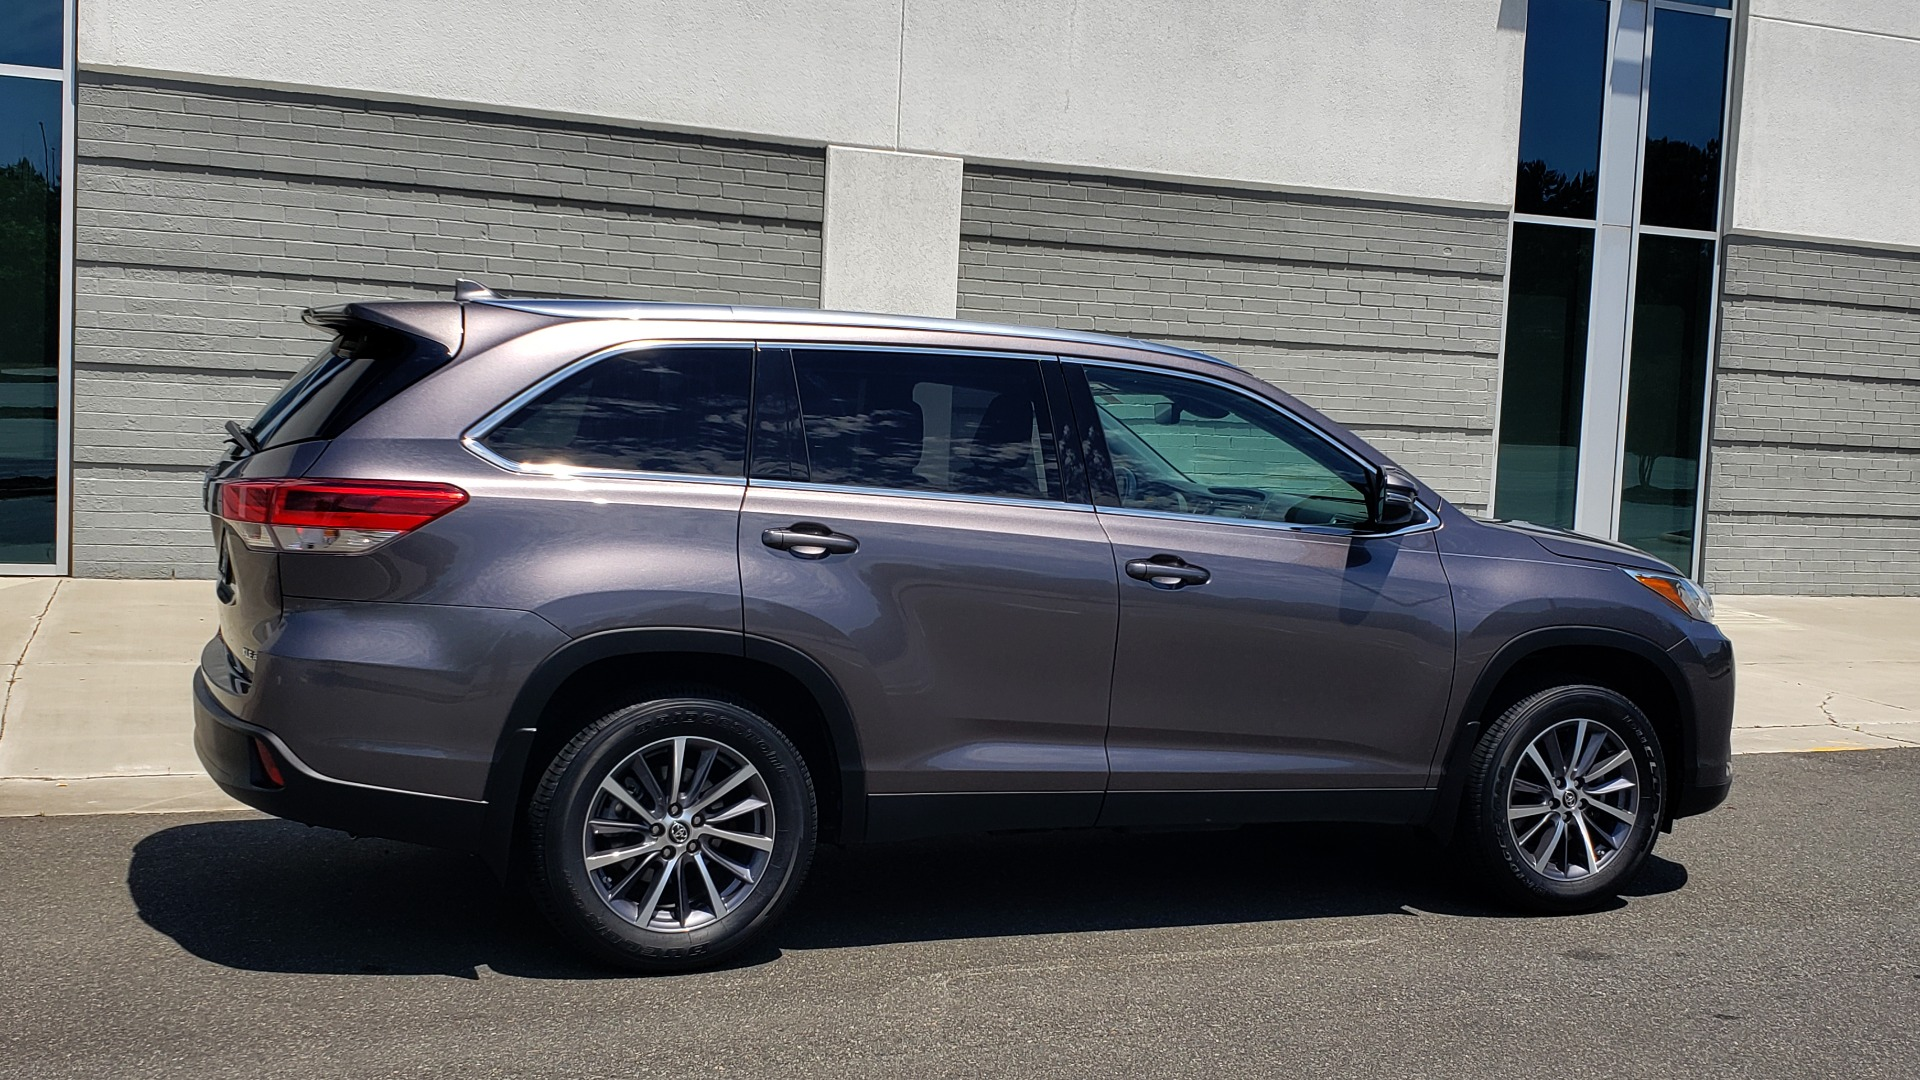 Used 2019 Toyota HIGHLANDER XLE / 3.5L V6 / AWD / LEATHER / 8-SPD AUTO / 1-OWNER for sale $37,500 at Formula Imports in Charlotte NC 28227 9